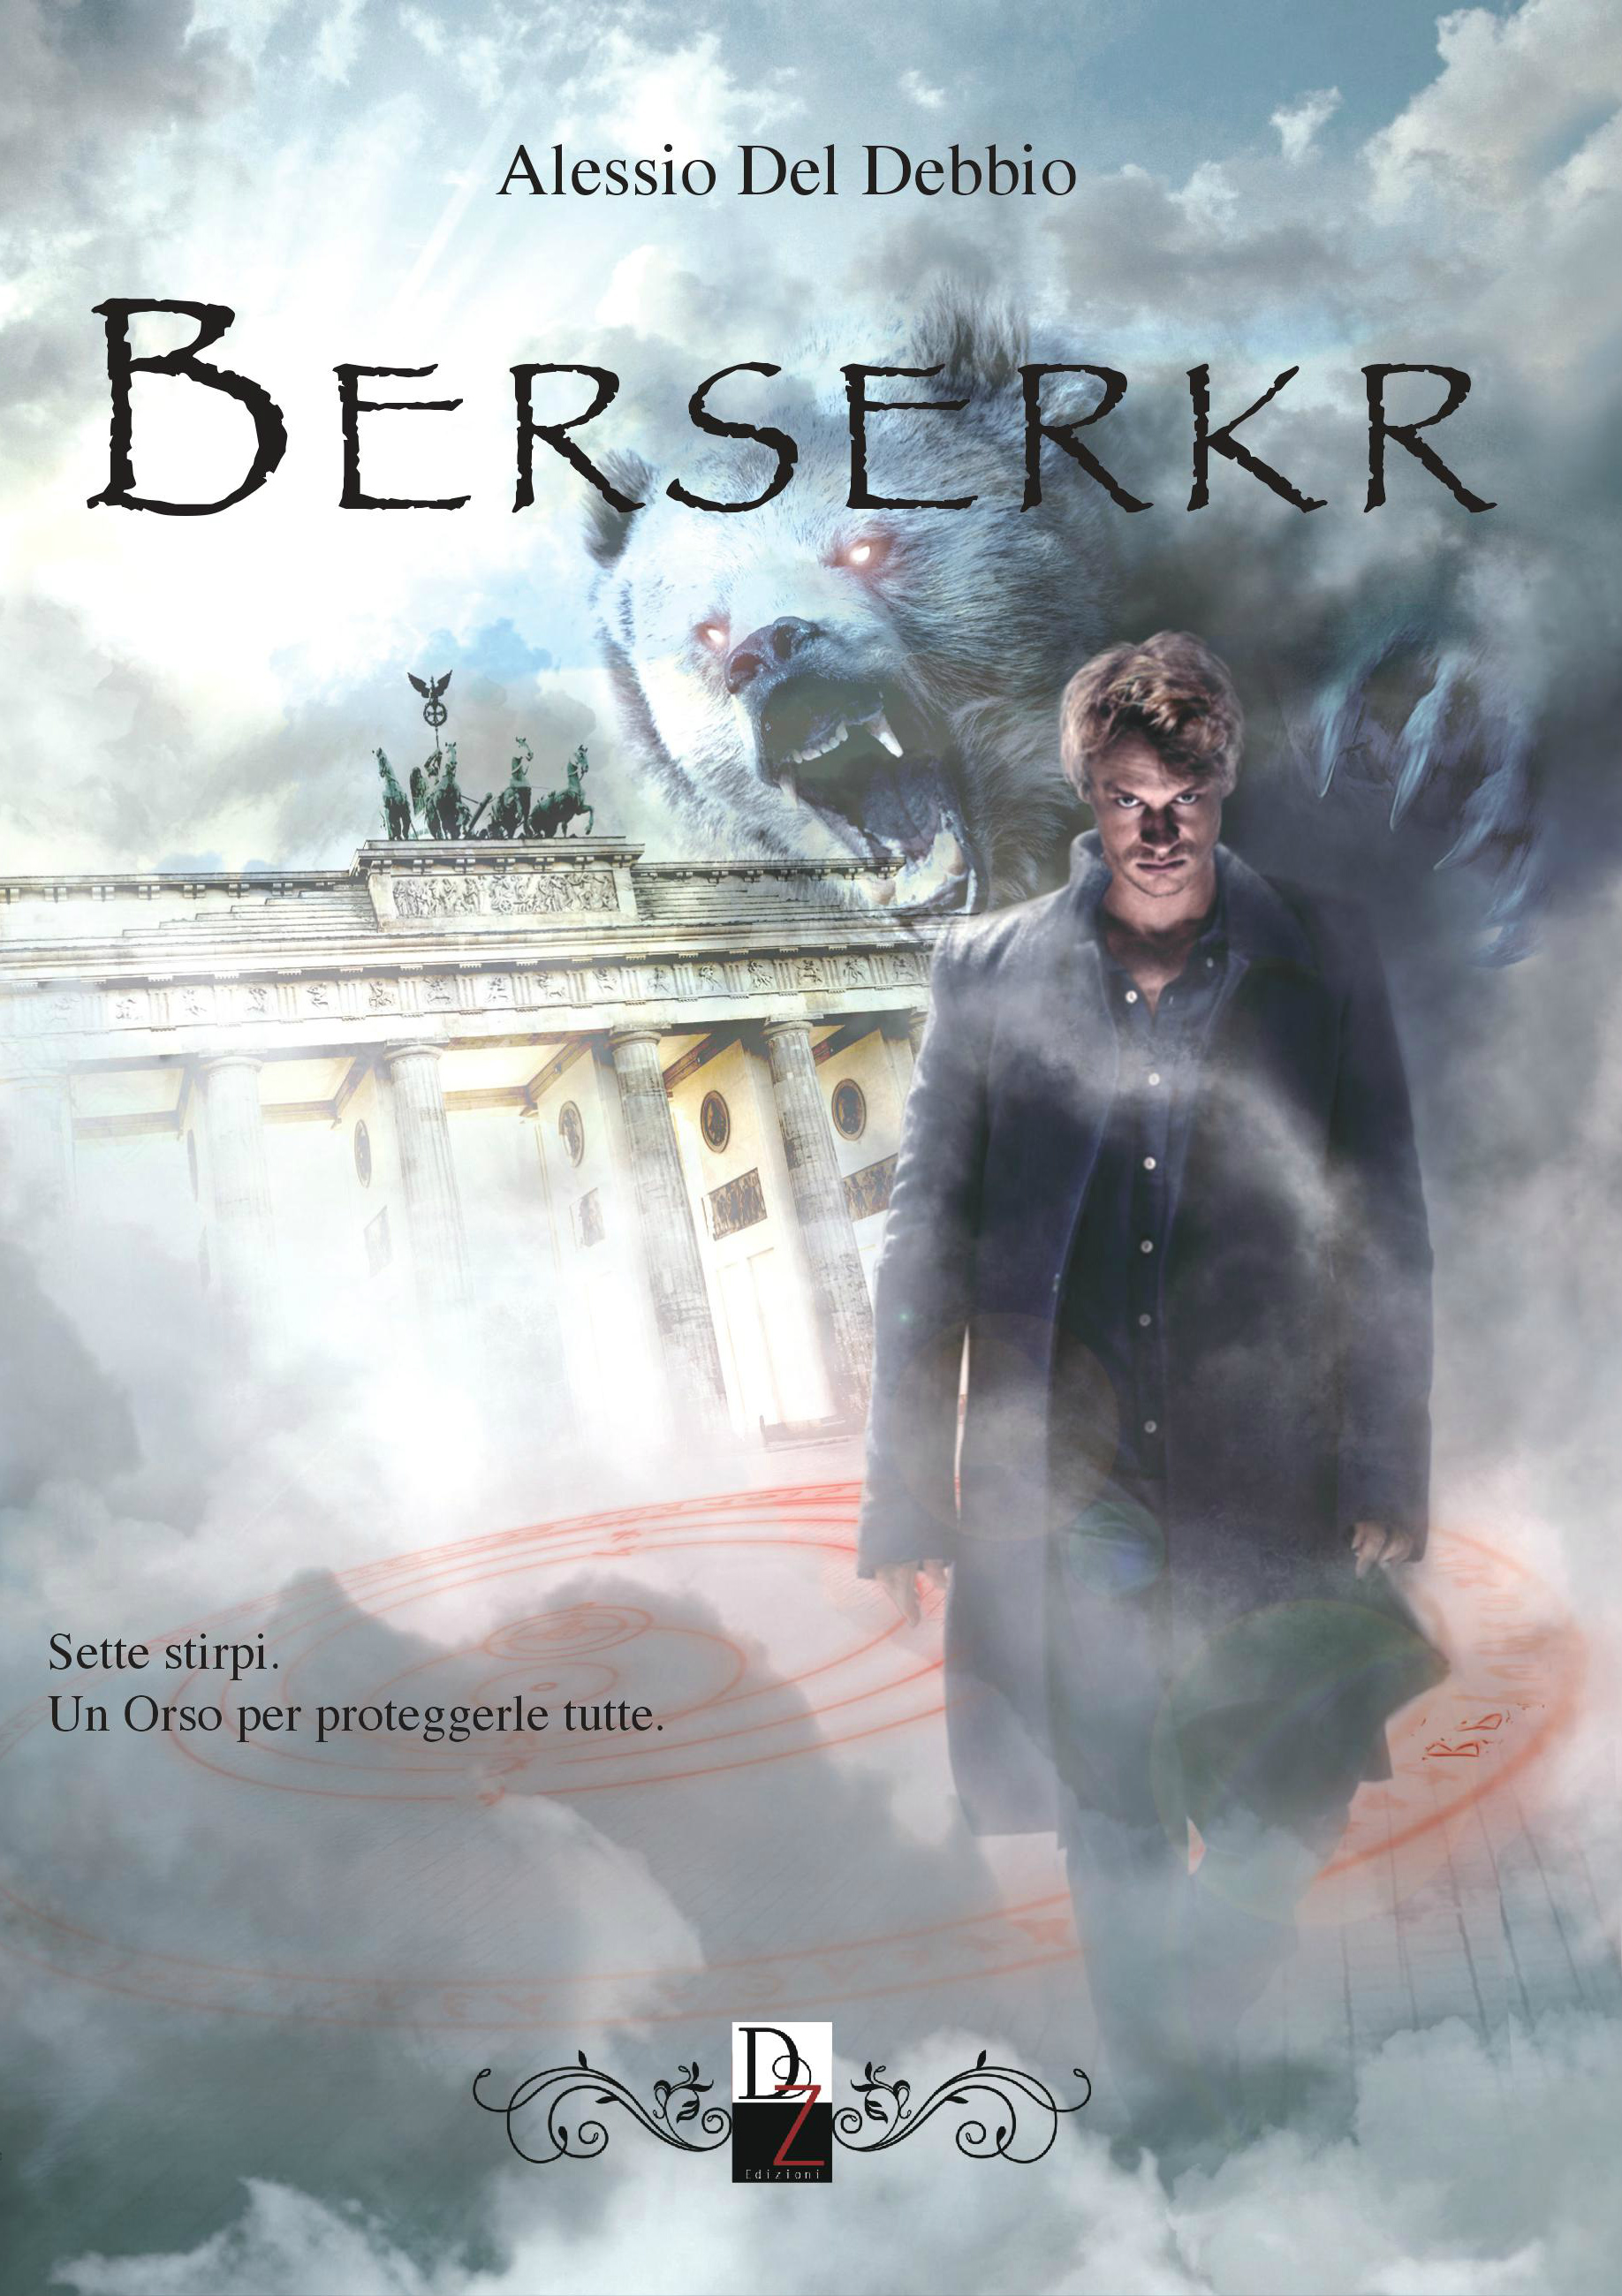 berserkr ibs amazon kobo kindle